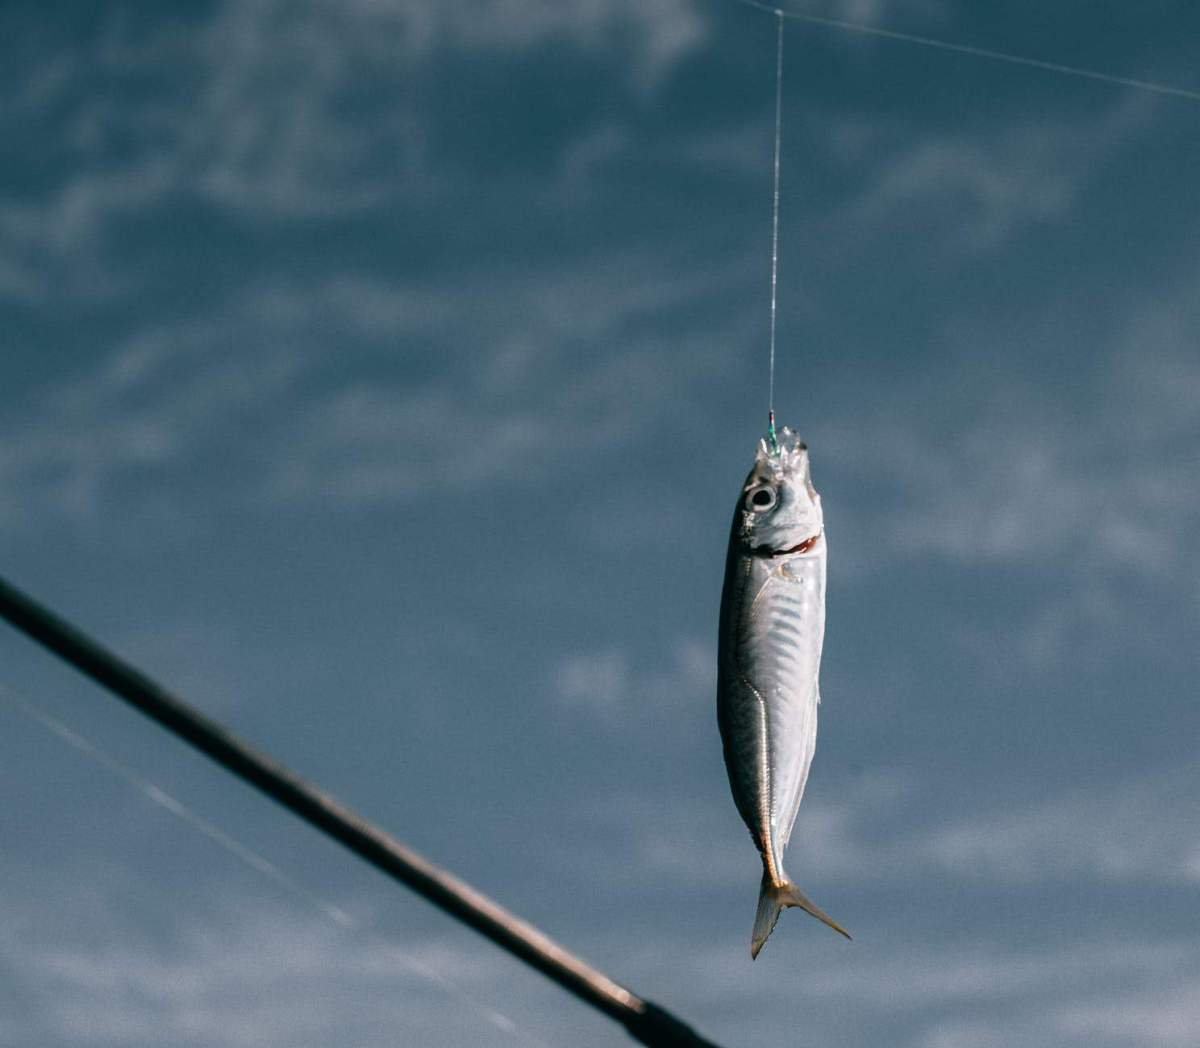 fish on the hook - representing people's responsibilities and why they're not rich